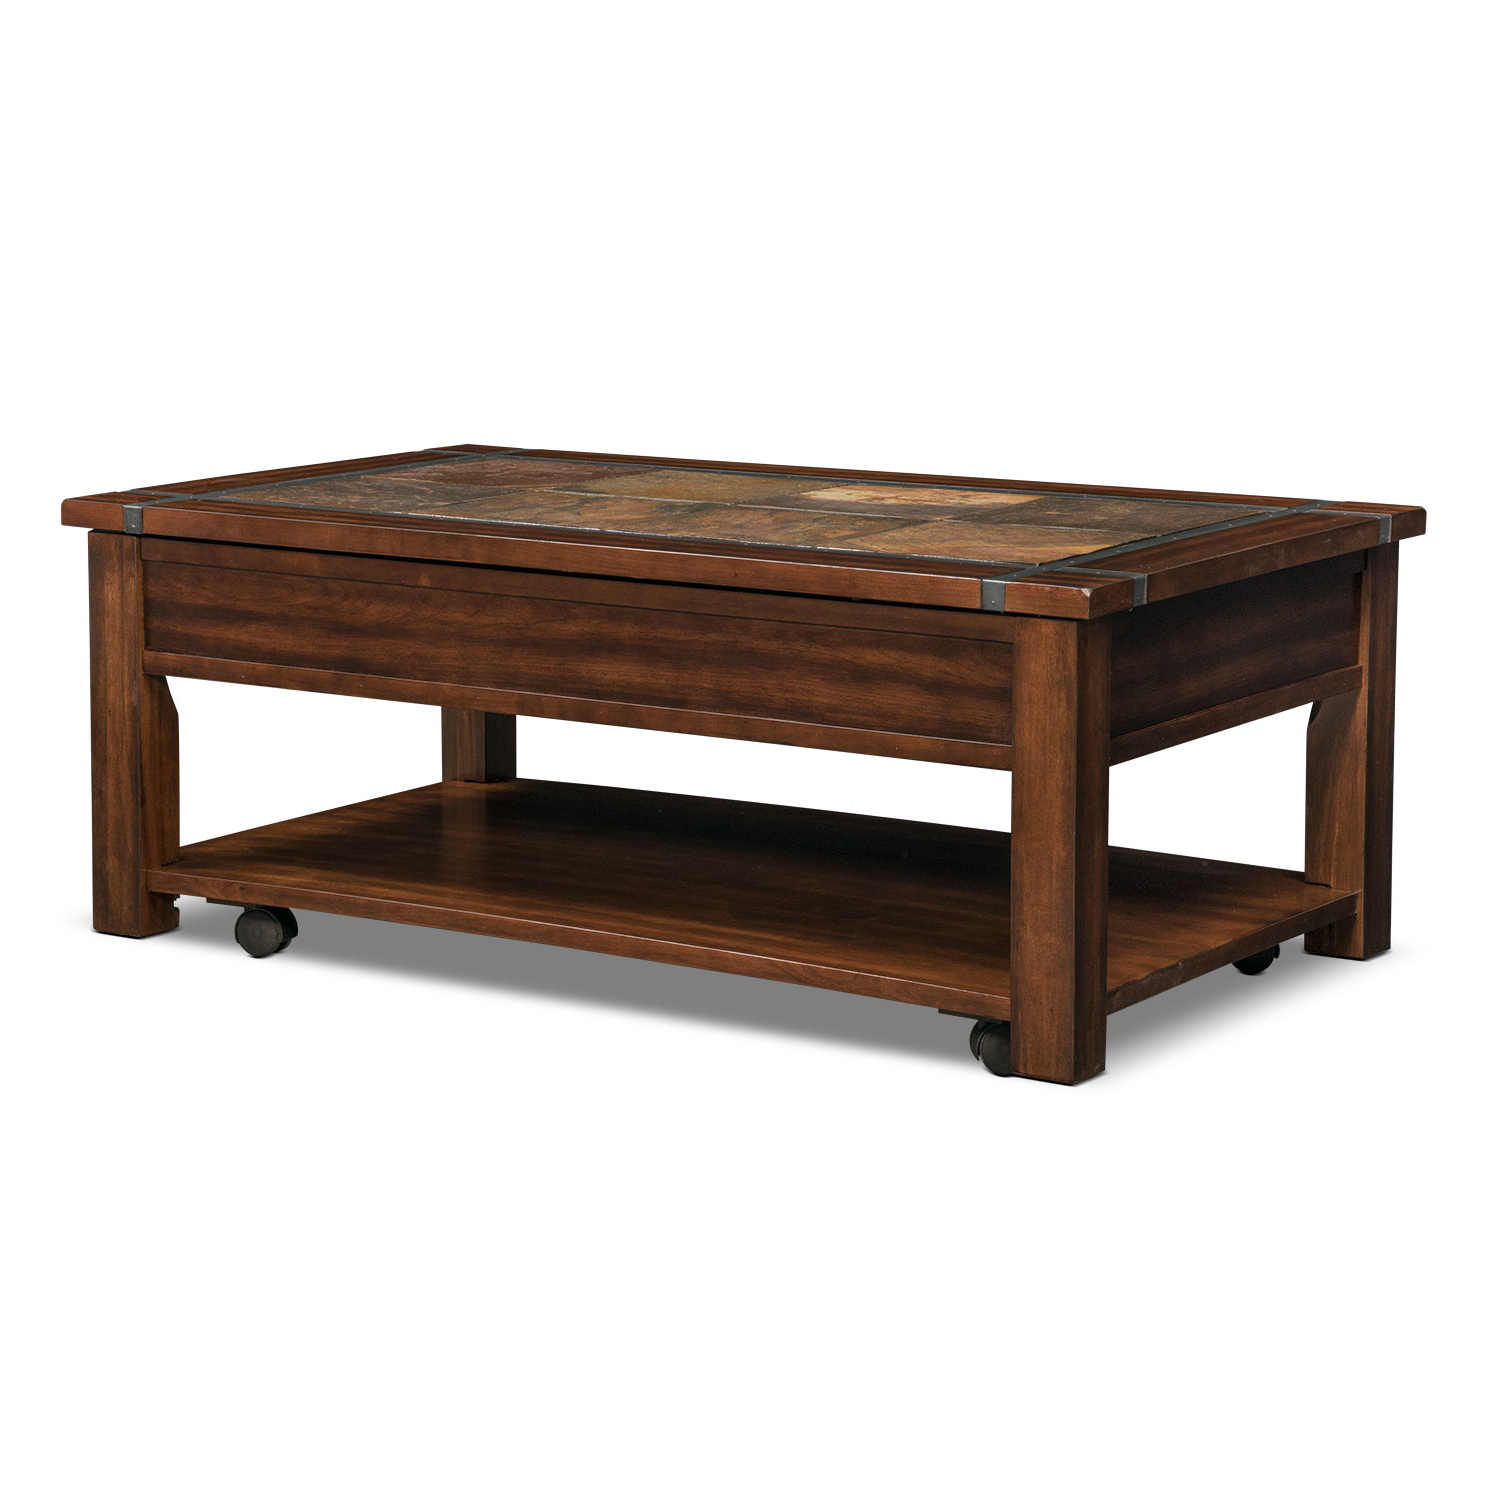 Value City Intended For Fashionable Reclaimed Pine & Iron Coffee Tables (View 19 of 20)